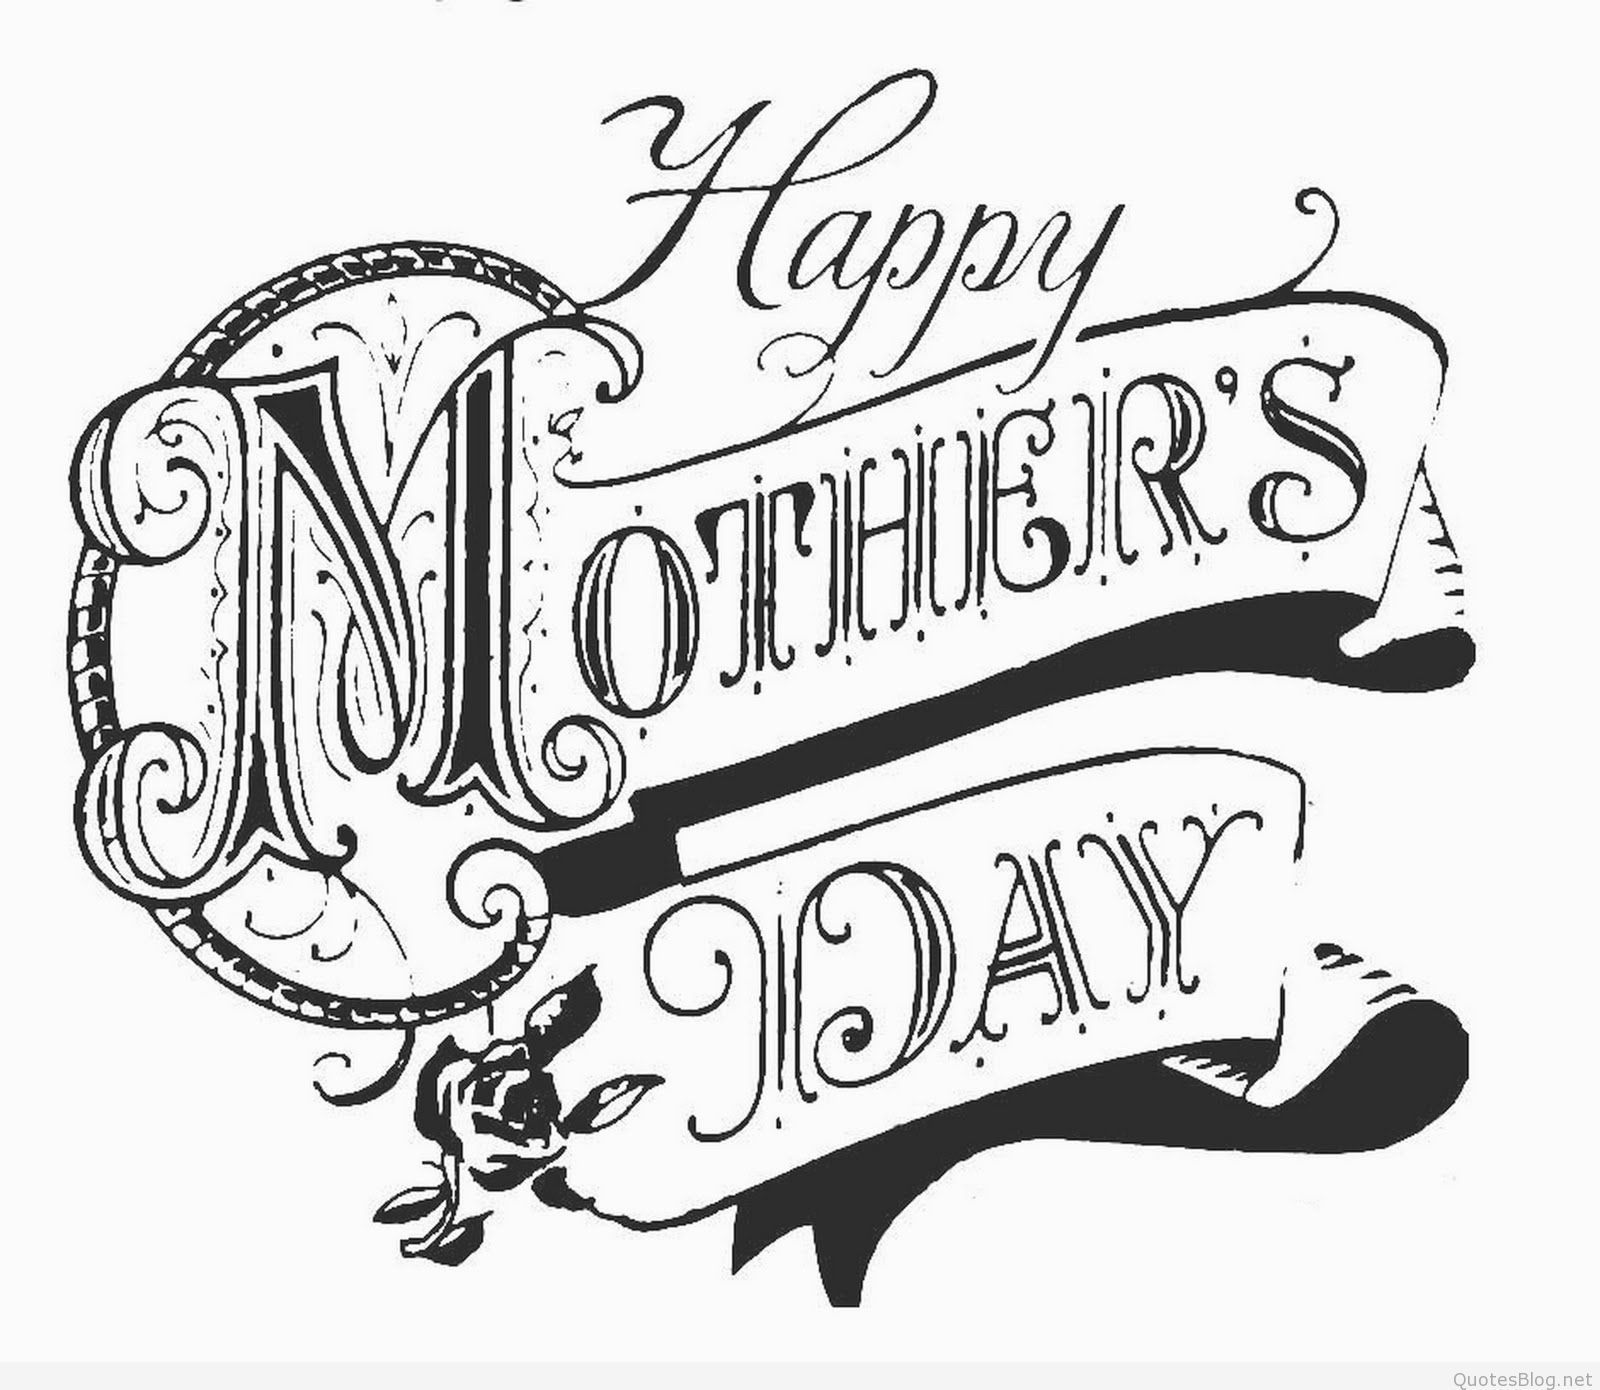 Best mother's day quotes. Top Mother's day messages. (With